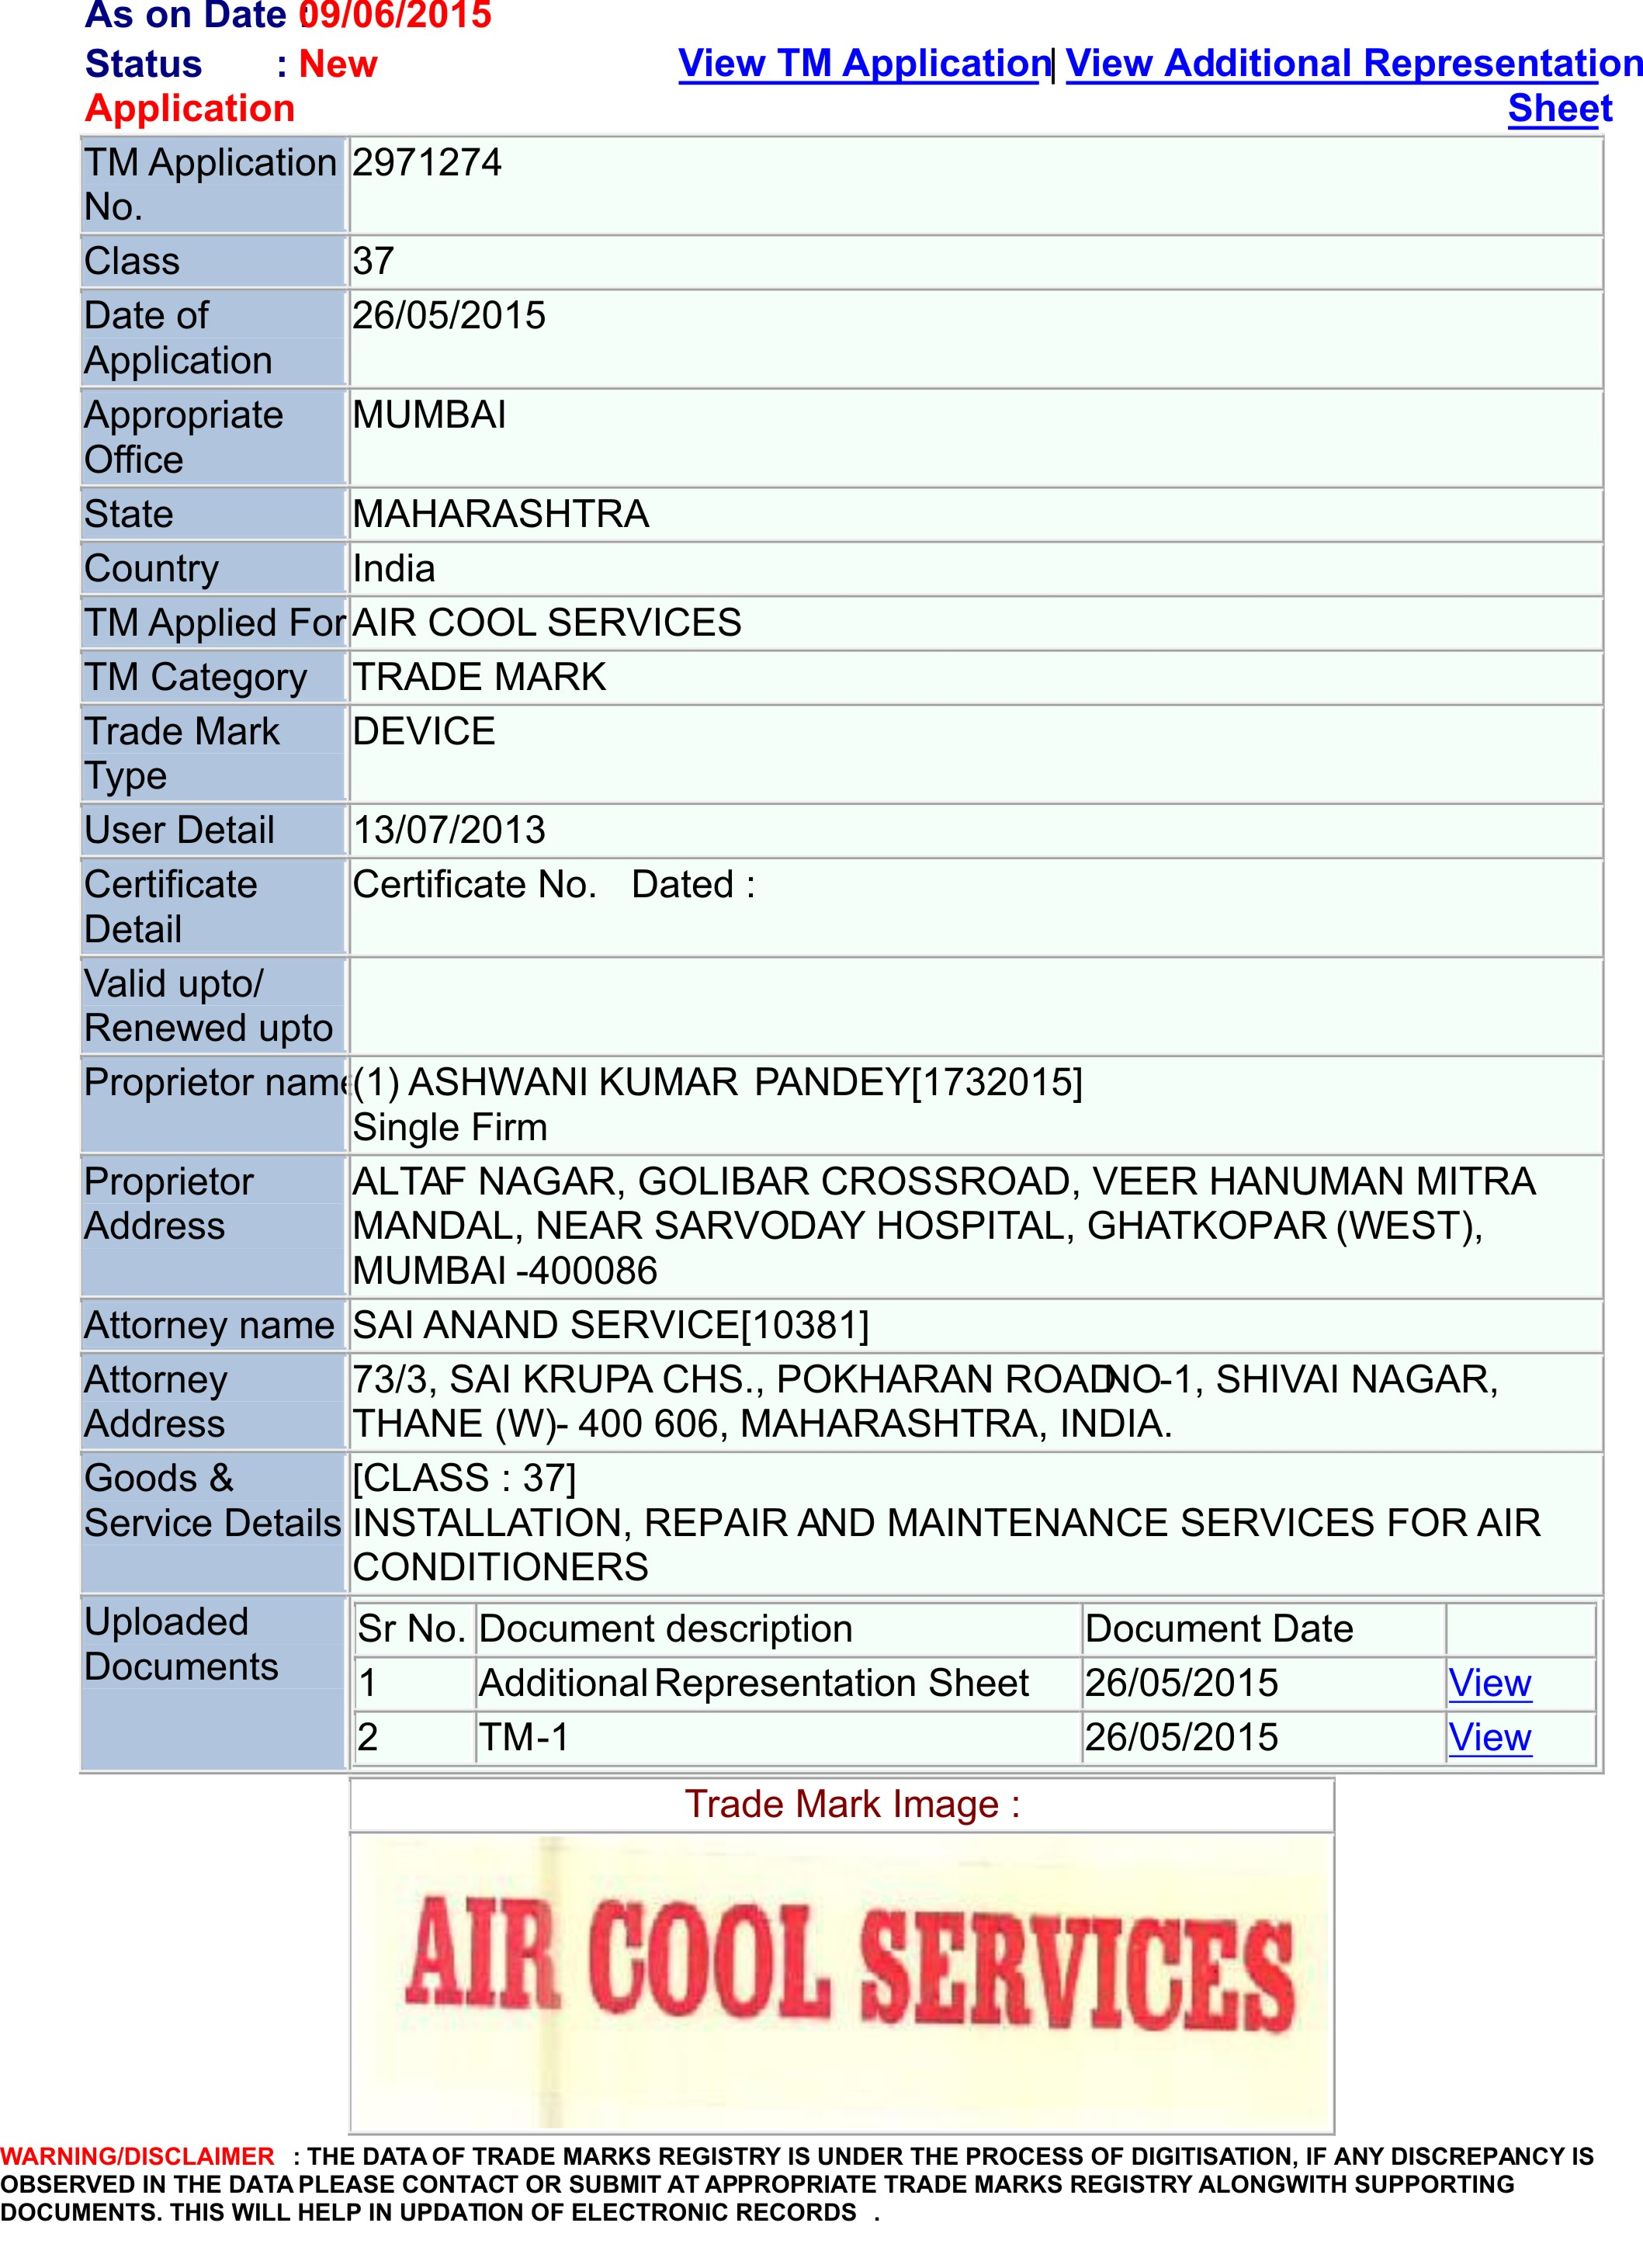 ac repair ac services ac maintenance ac maintenance contract air conditioner amc mumbai service air conditionerac